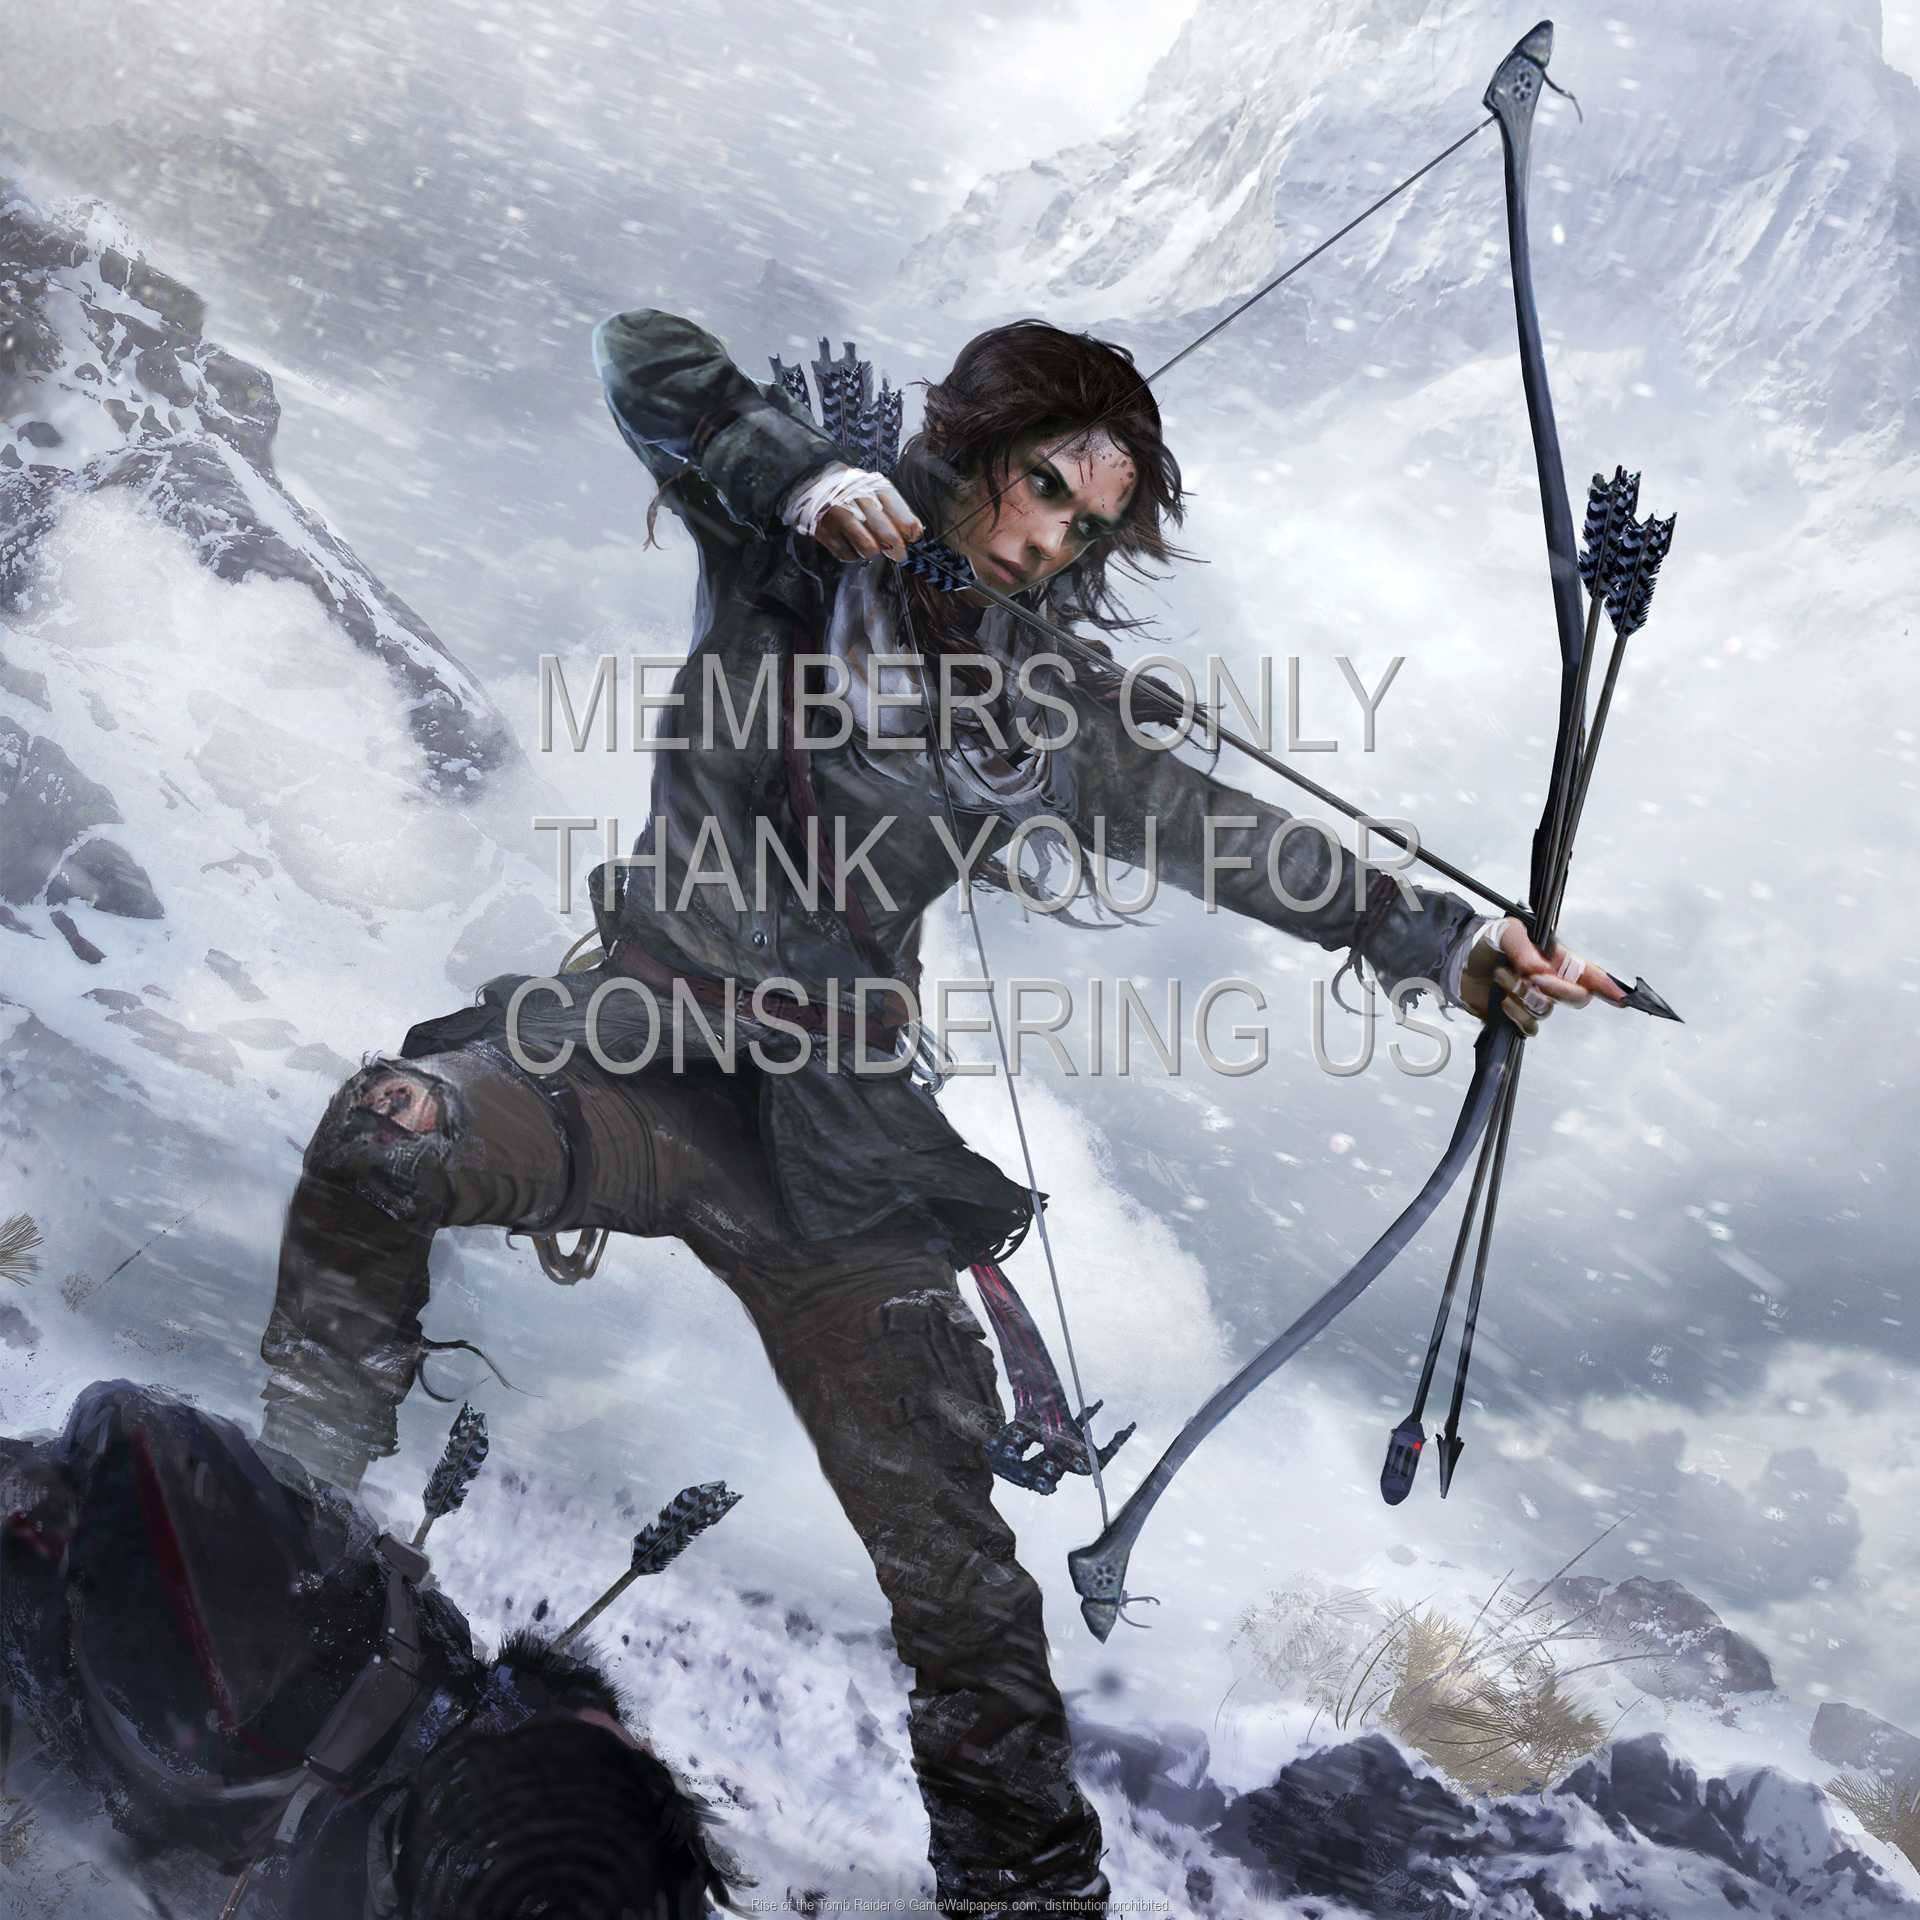 Rise of the Tomb Raider 1080p Horizontal Mobile wallpaper or background 21